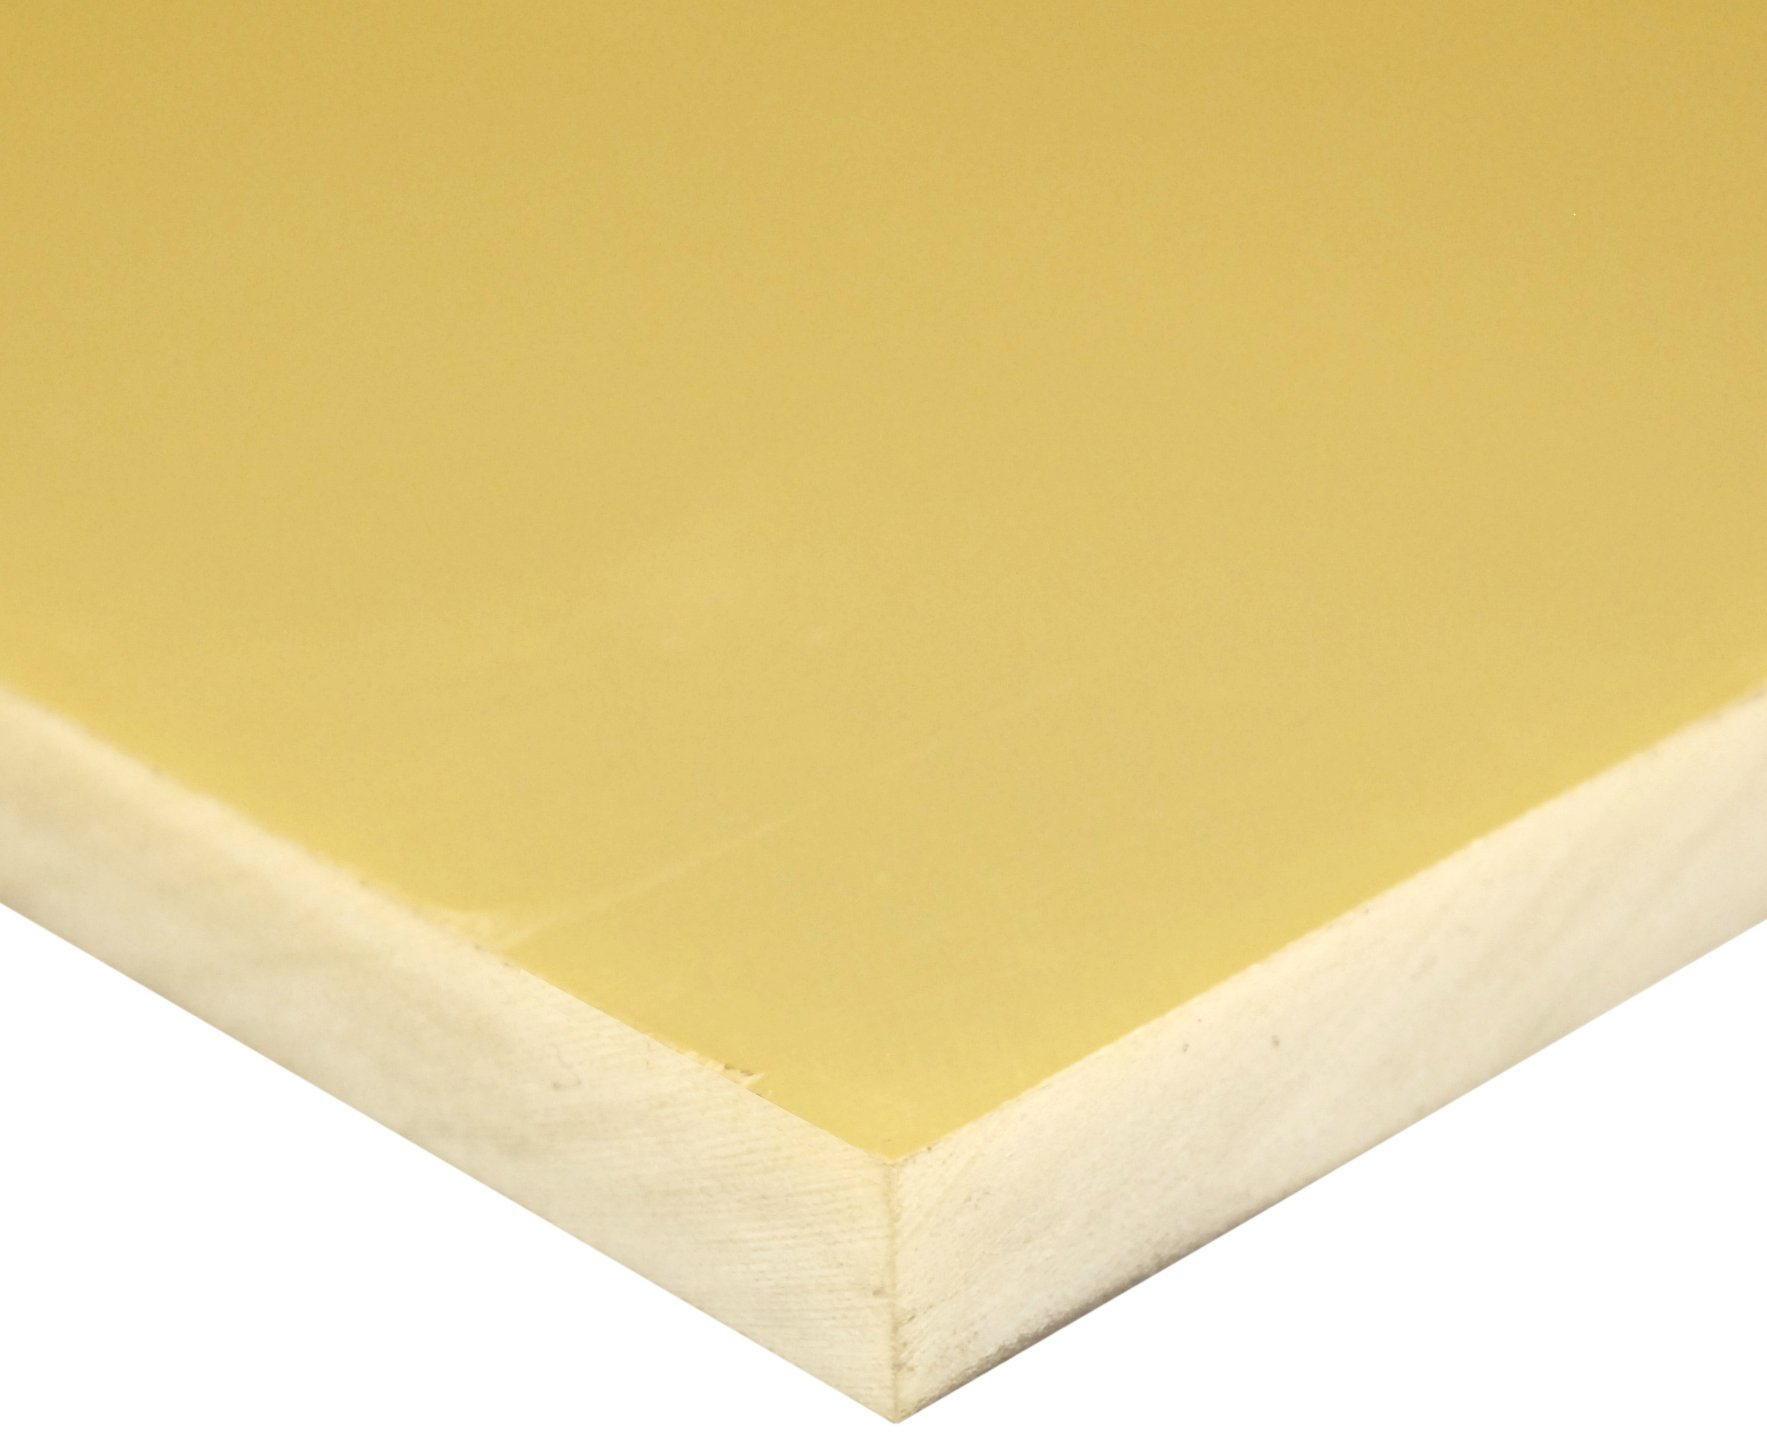 Phenolic Sheet, Natural, 0.125'' Thickness, 12'' Width, 24'' Length (Pack of 1) by Small Parts